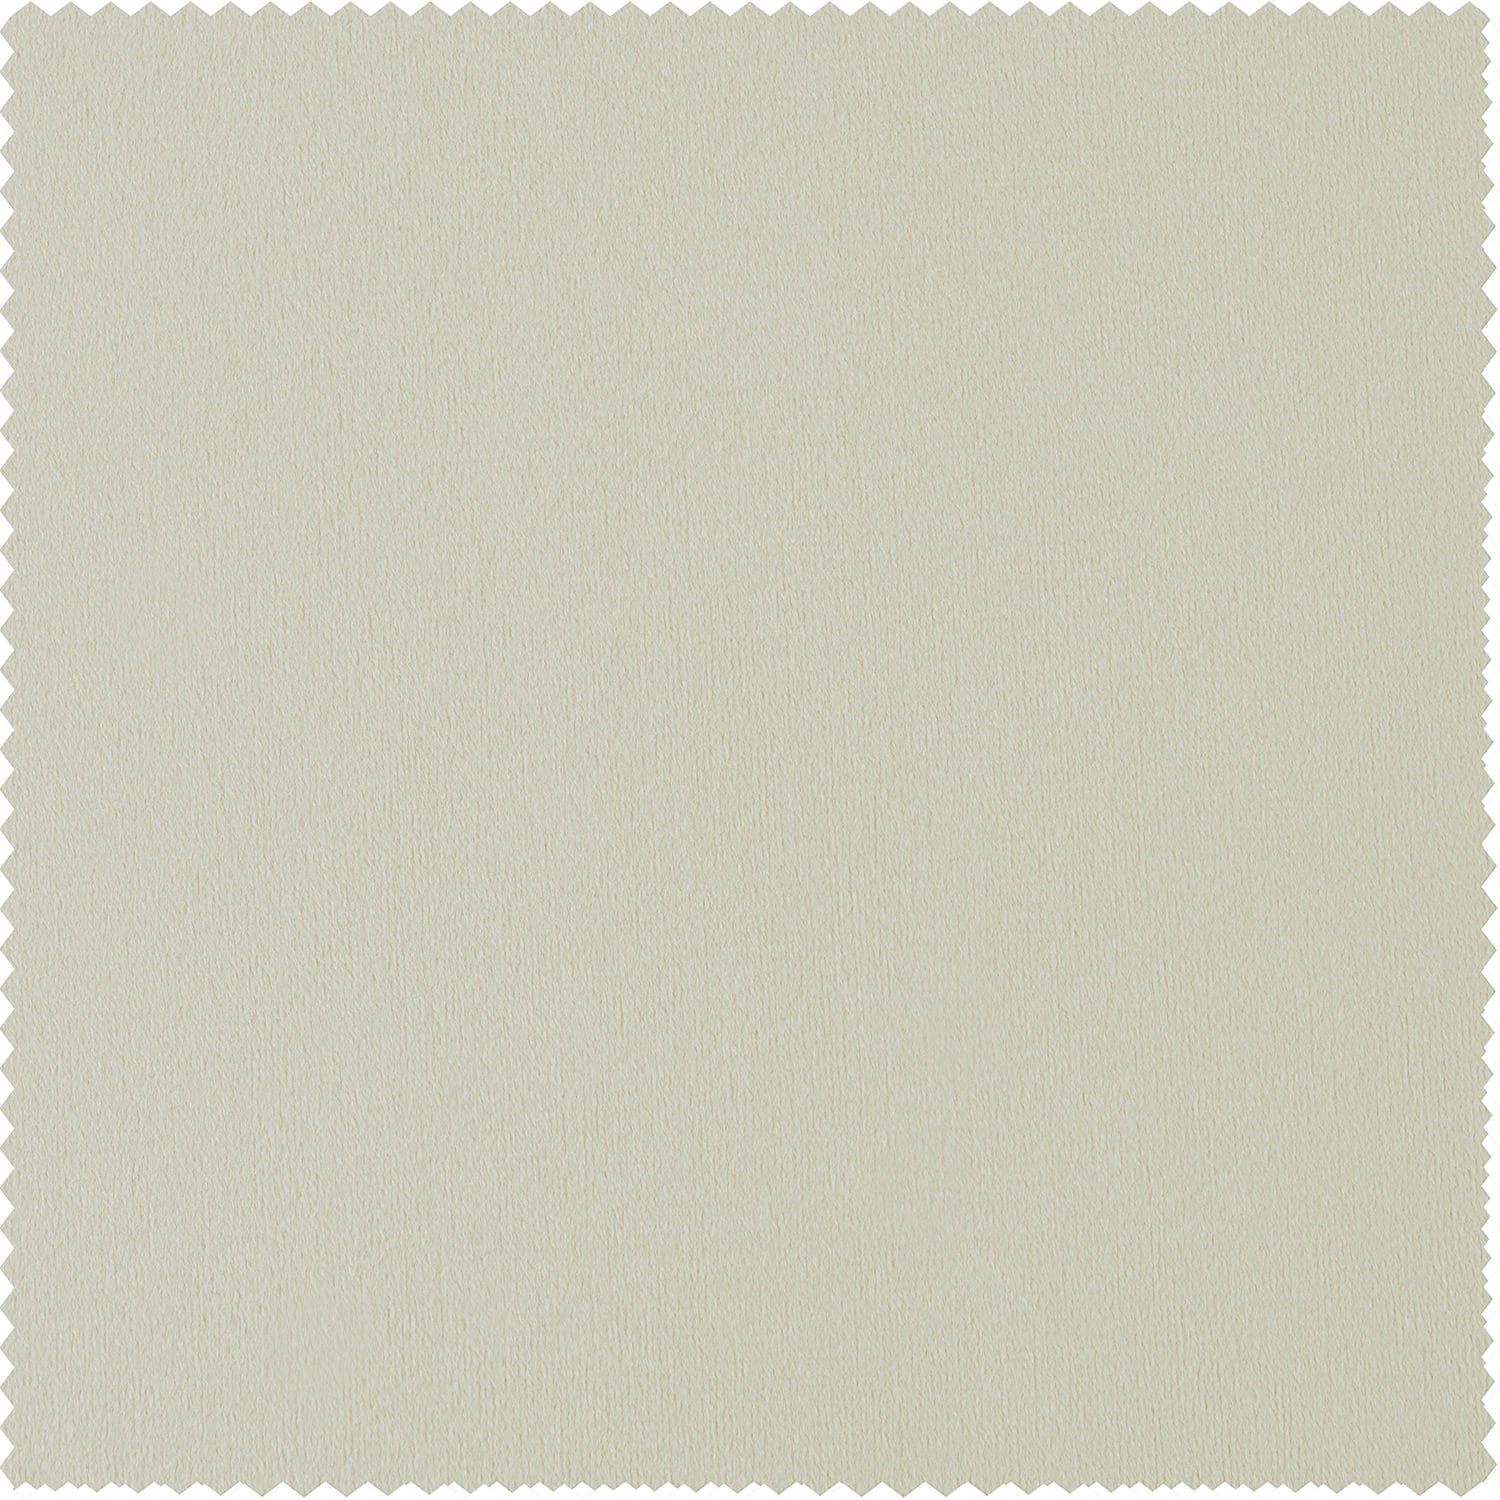 Signature Porcelain White Blackout Velvet Swatch